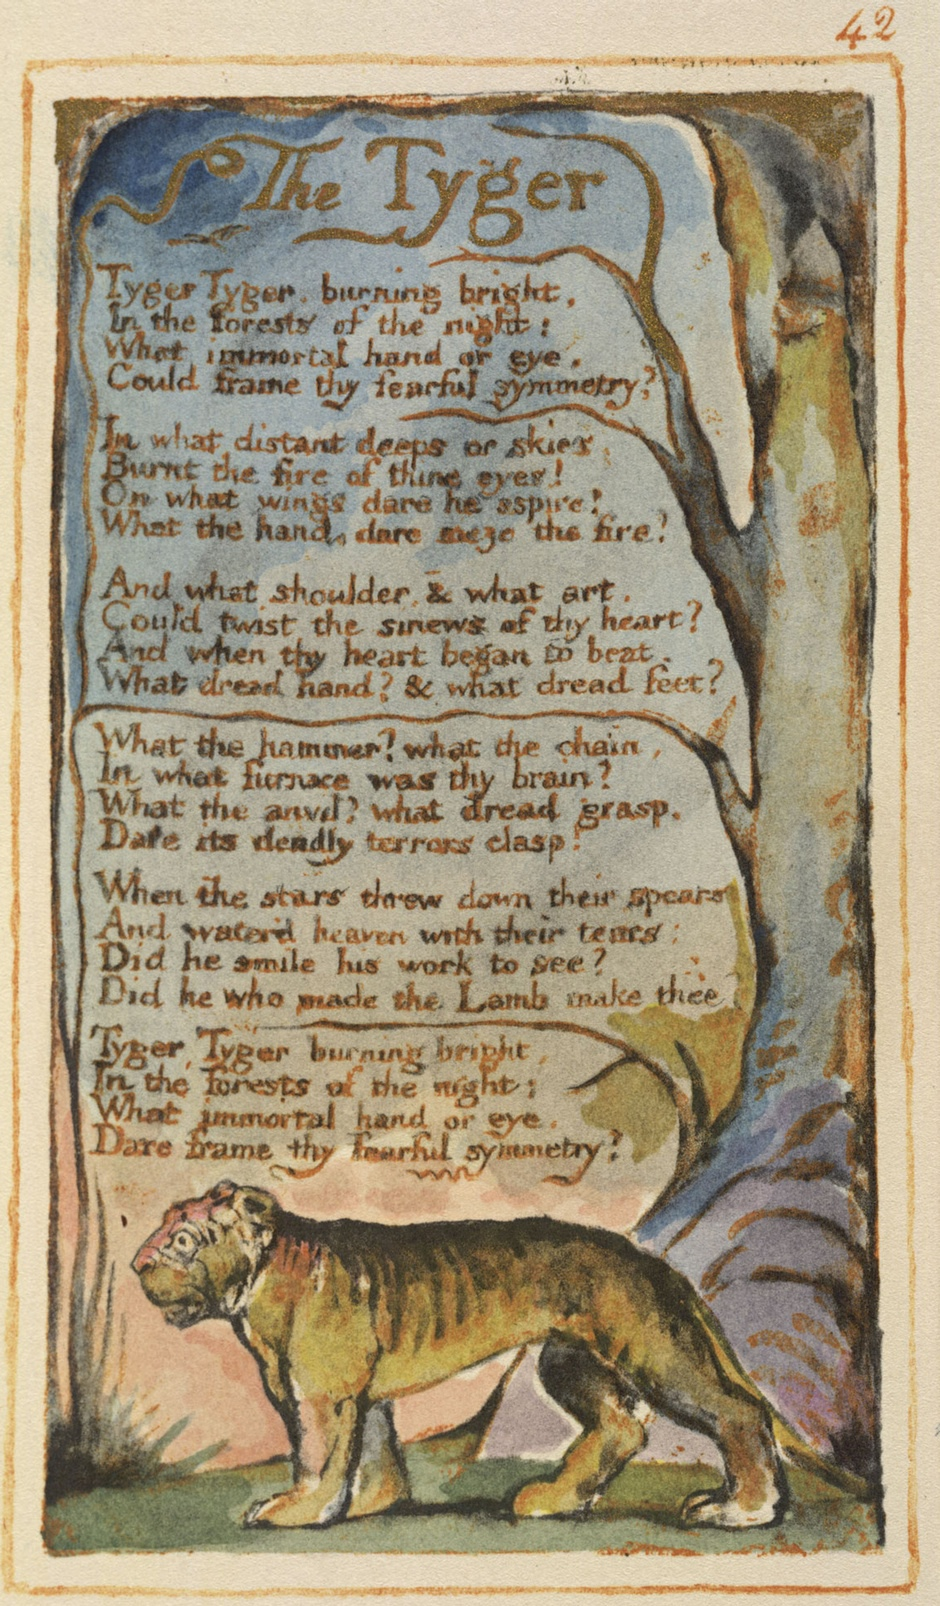 an analysis of the lamb by william blake George norton's close reading of william blake's 'the tyger' considers the poem's imagery through 18th-century industrial and political revolutions and moral literature.